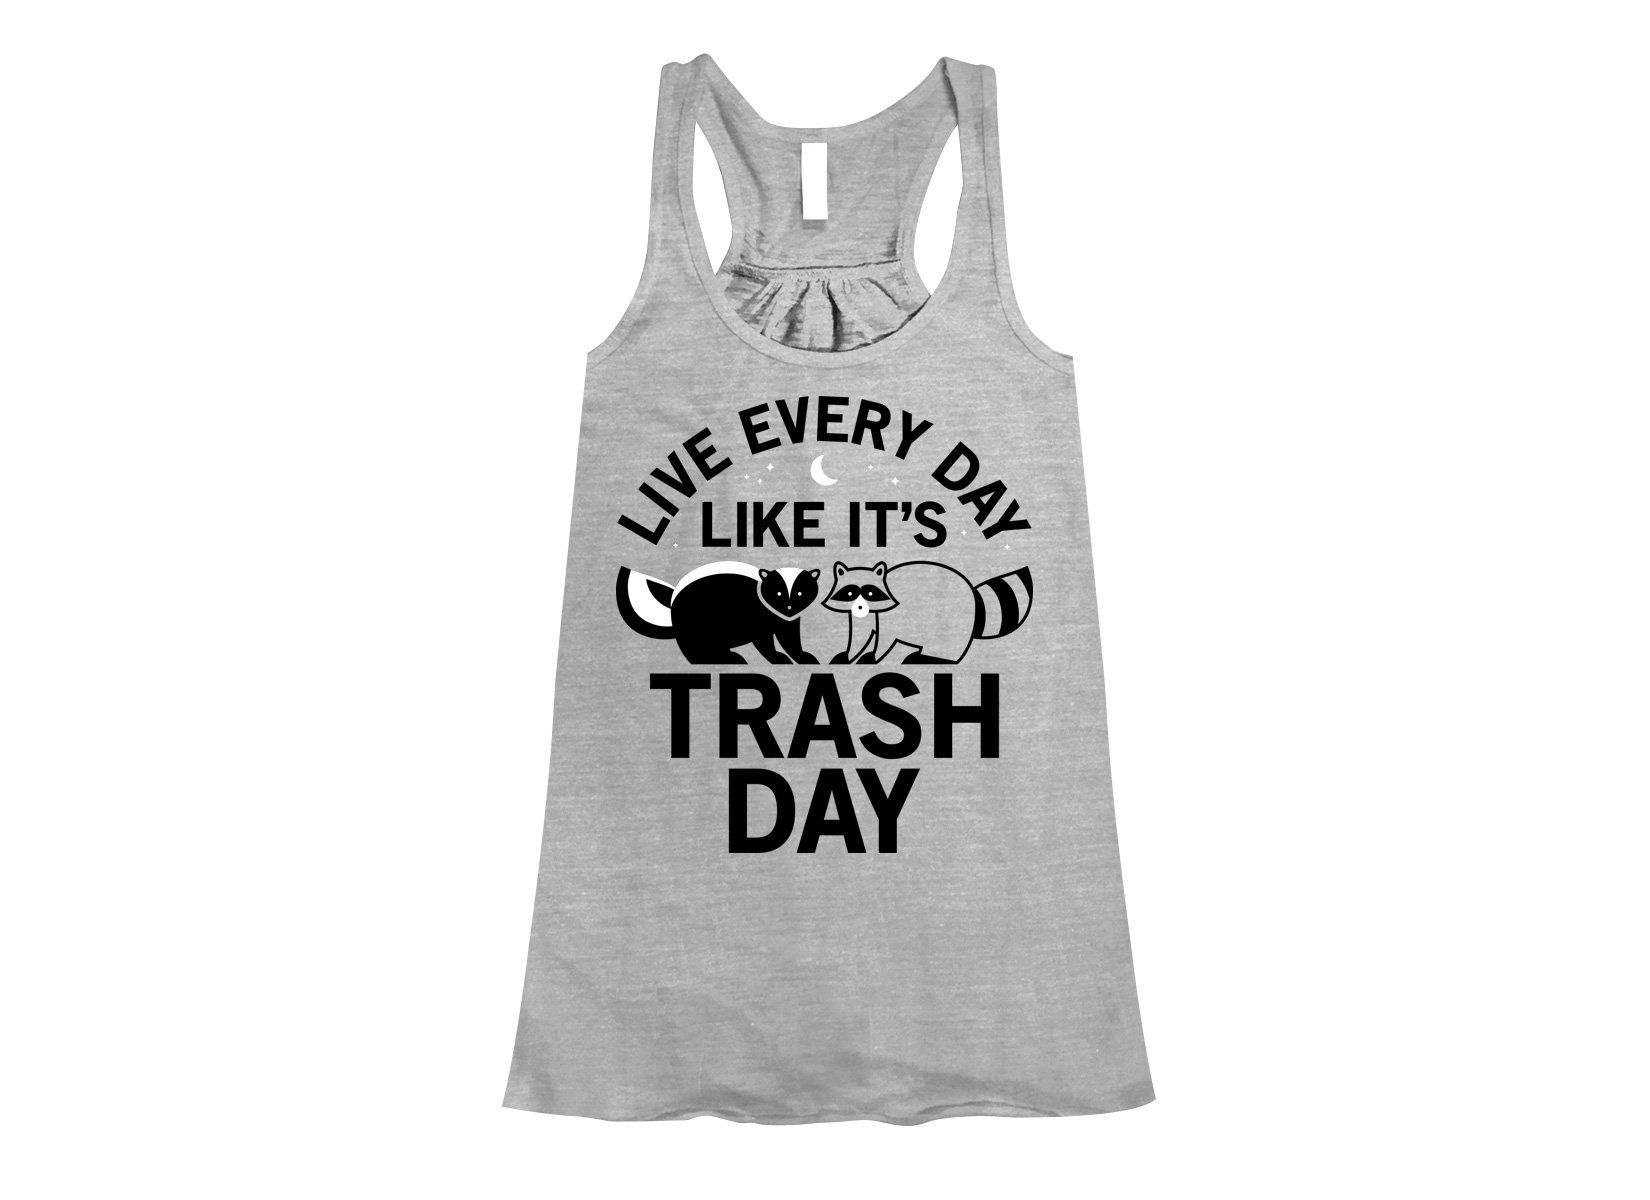 Live Every Day Like It's Trash Day on Womens Tanks T-Shirt